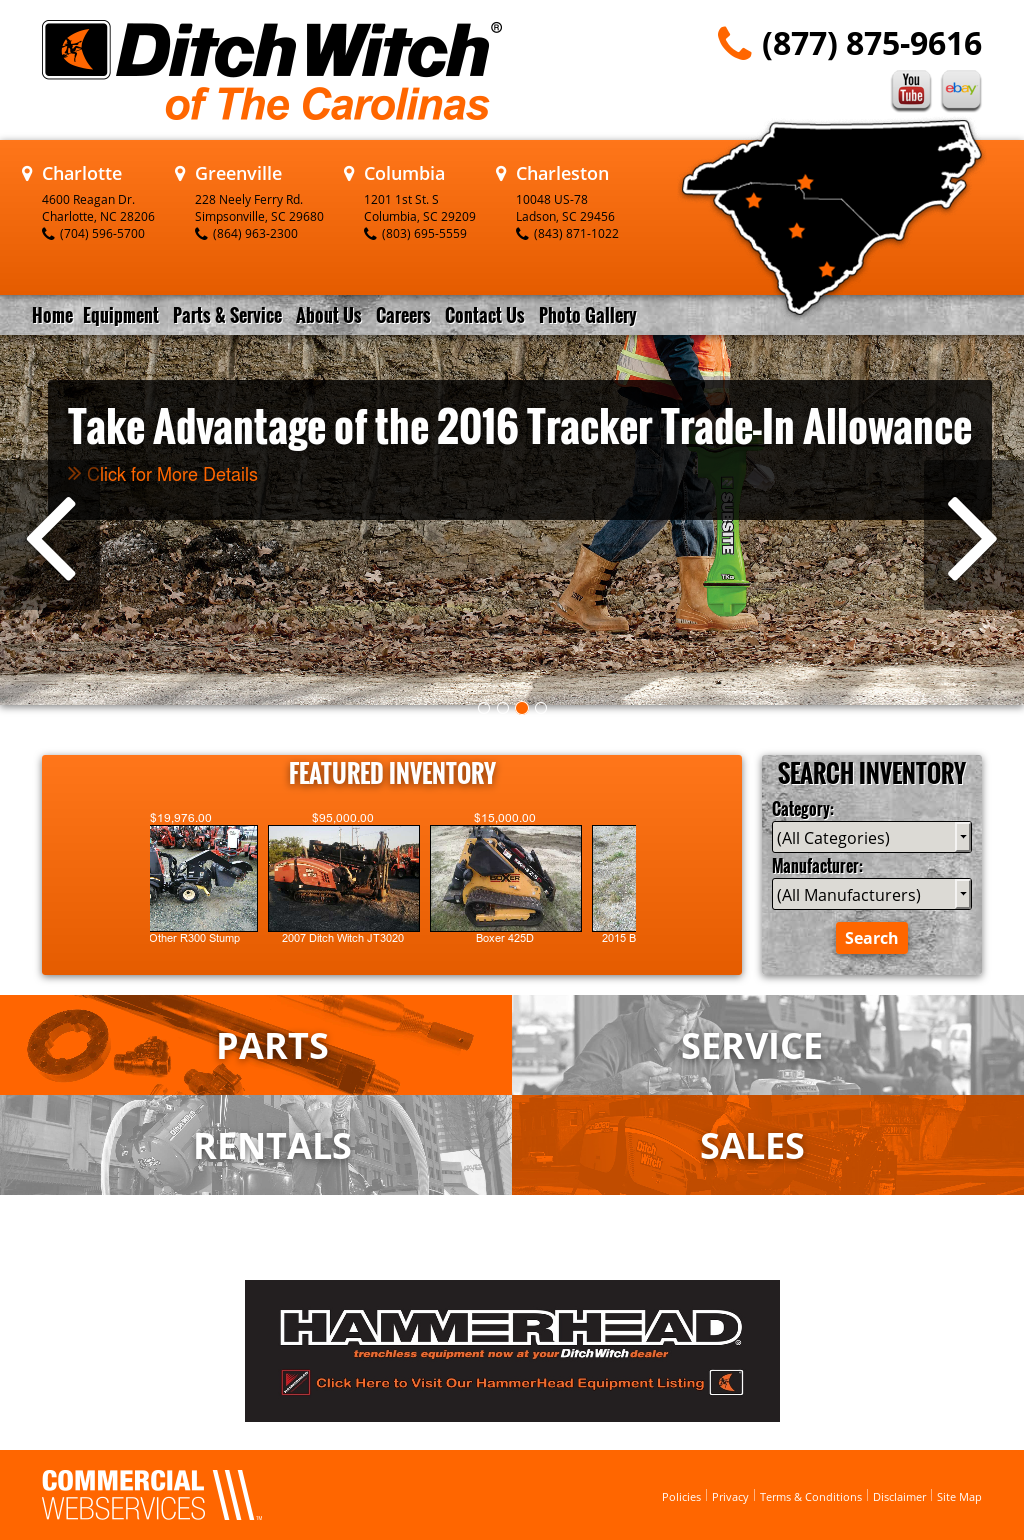 Ditch Witch of the Carolinas Competitors, Revenue and Employees